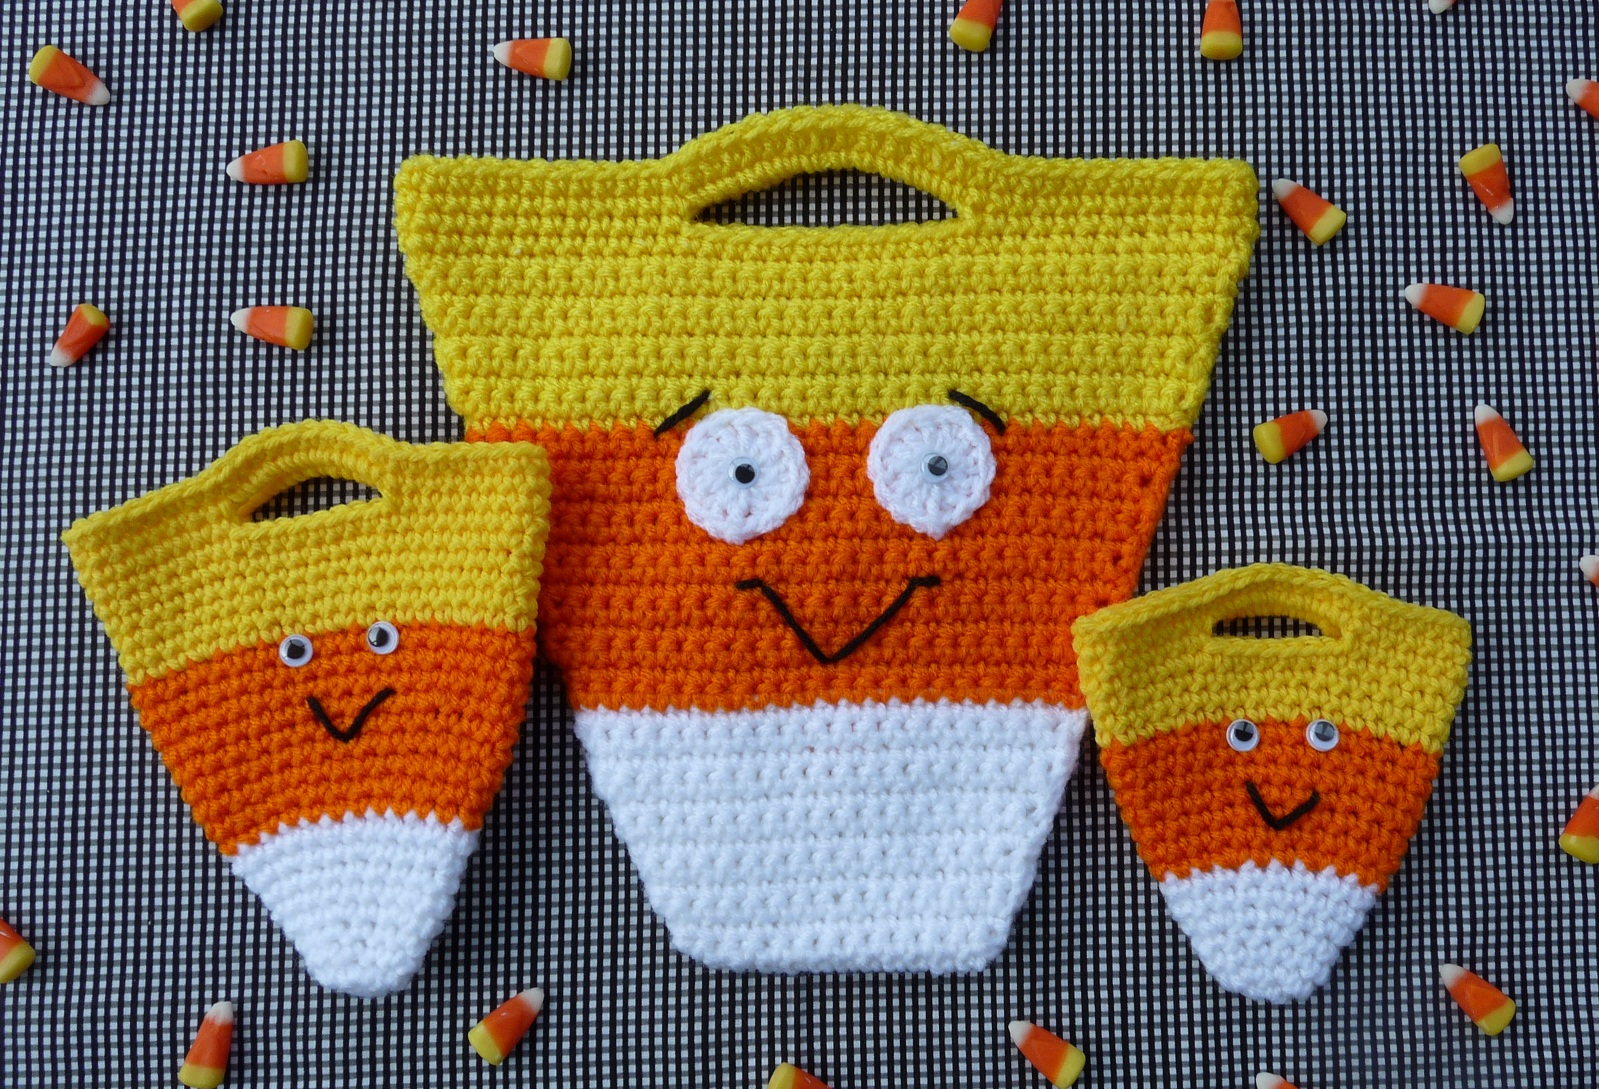 Large candy corn treat bag: Whiskers Wool Candy Corn Halloween Bag Set New Crochet Pattern In Shop